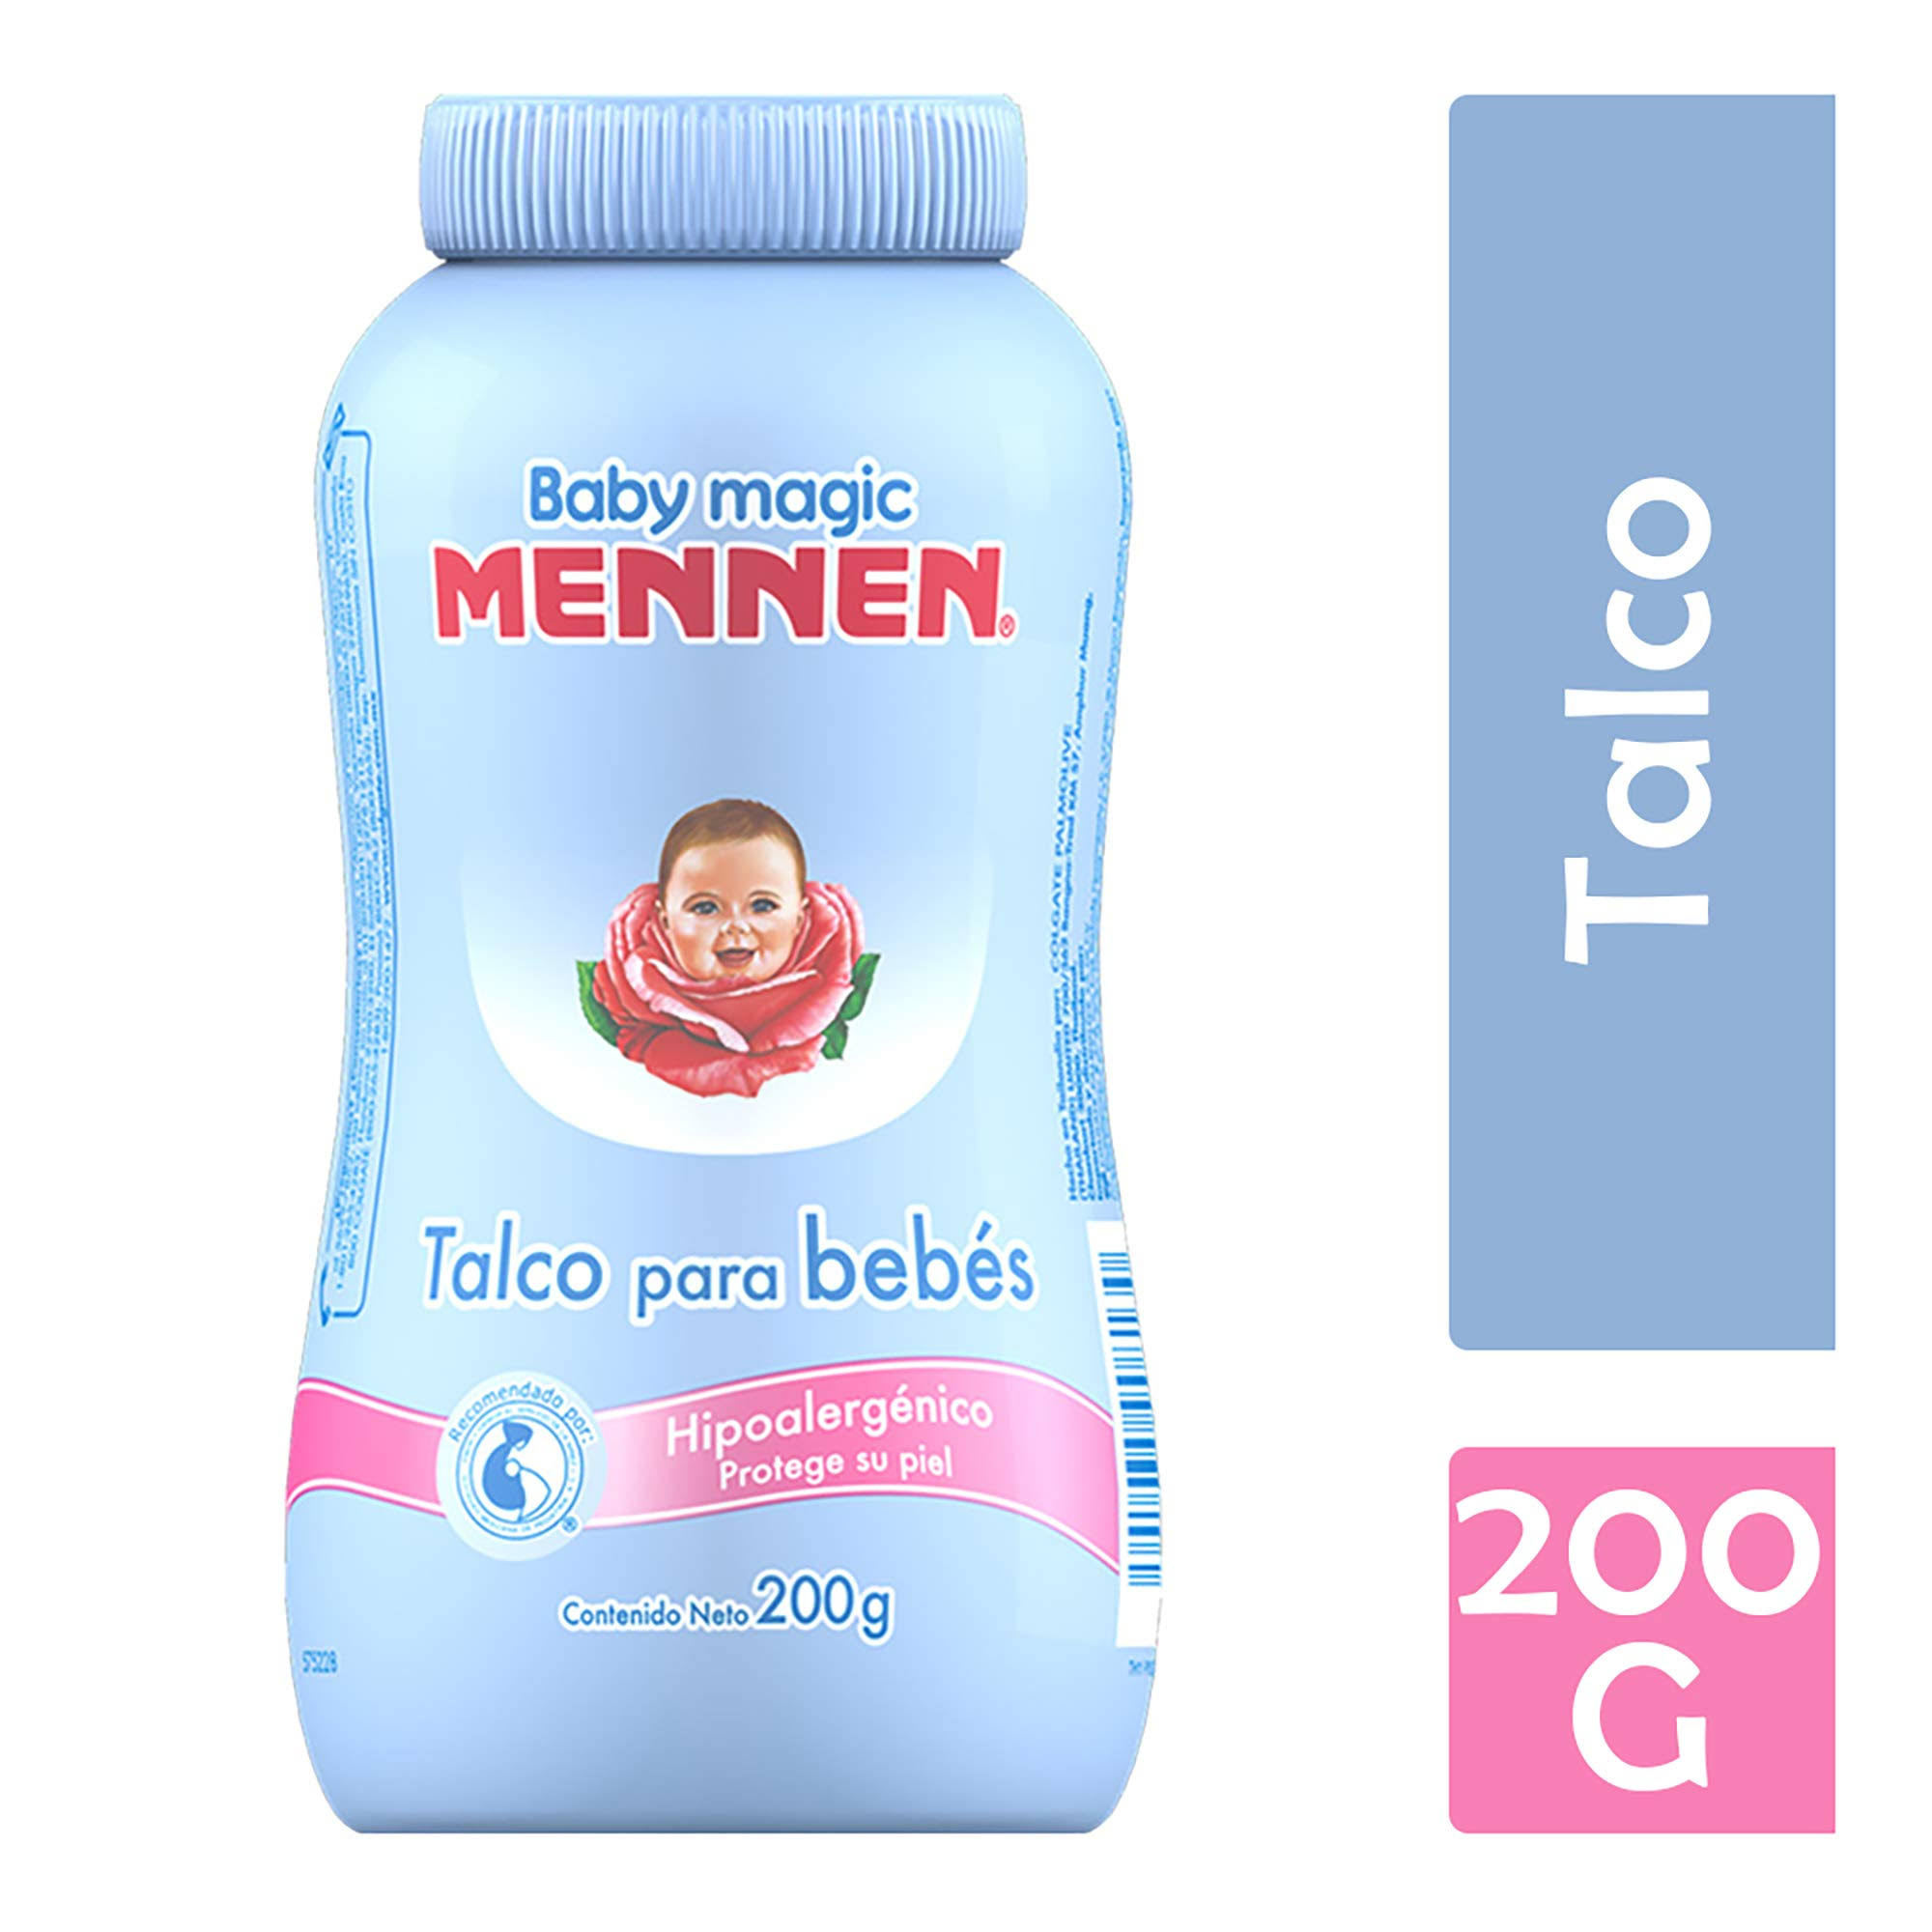 Mennen Baby Magic Powder - 7.05oz